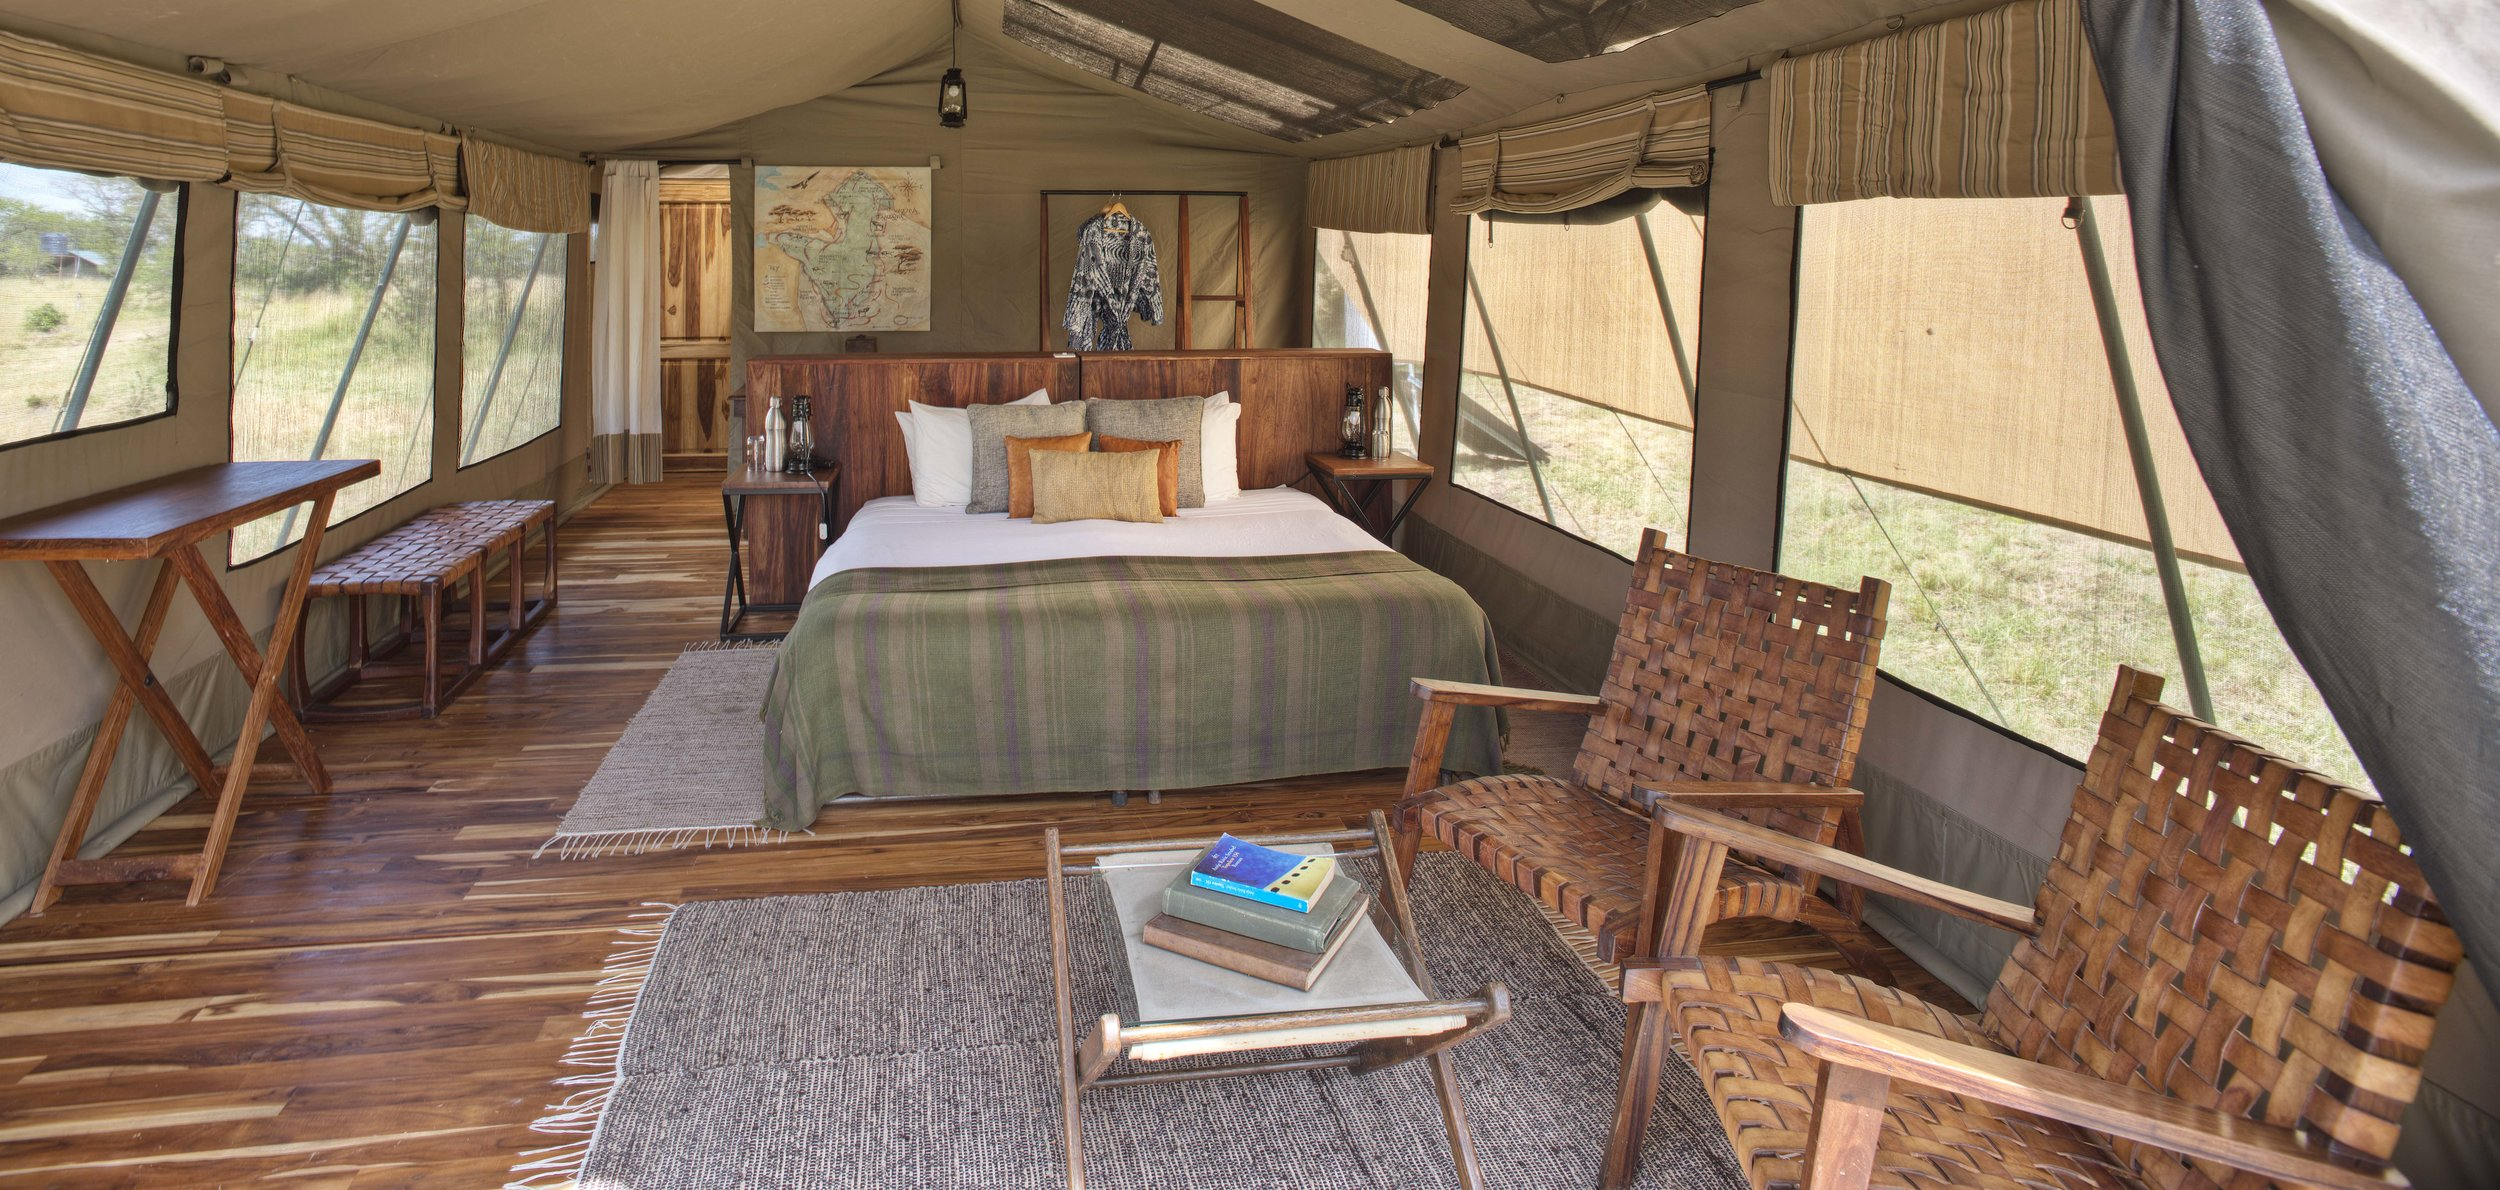 Olakira-En-suite-double-room-with-wooden-deck-platform-and-lounge-area.jpg